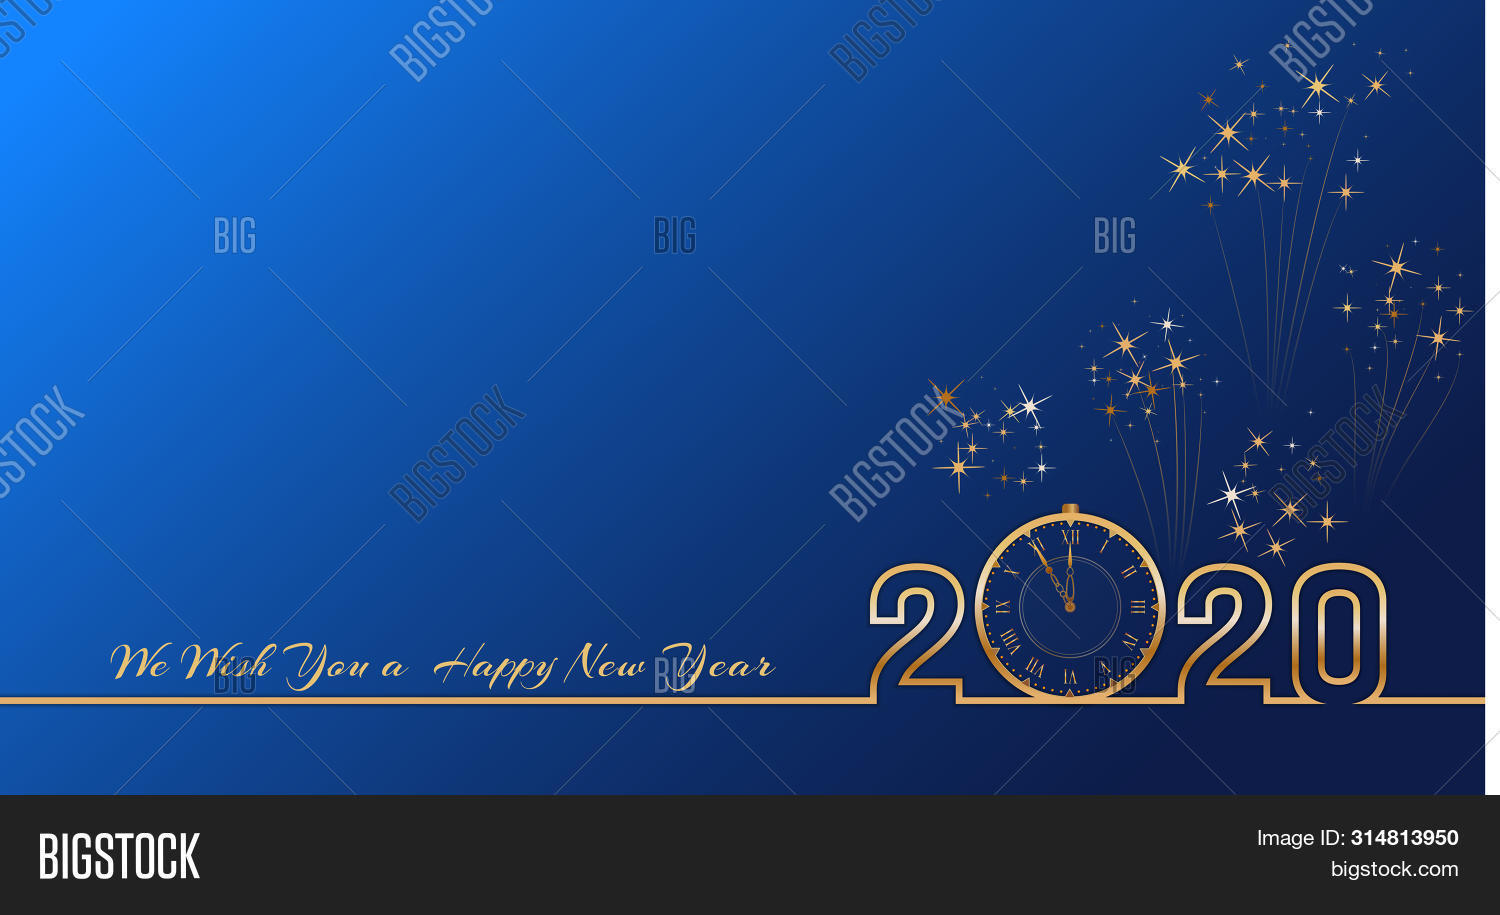 2020 happy new year vector photo free trial bigstock 2020 happy new year vector photo